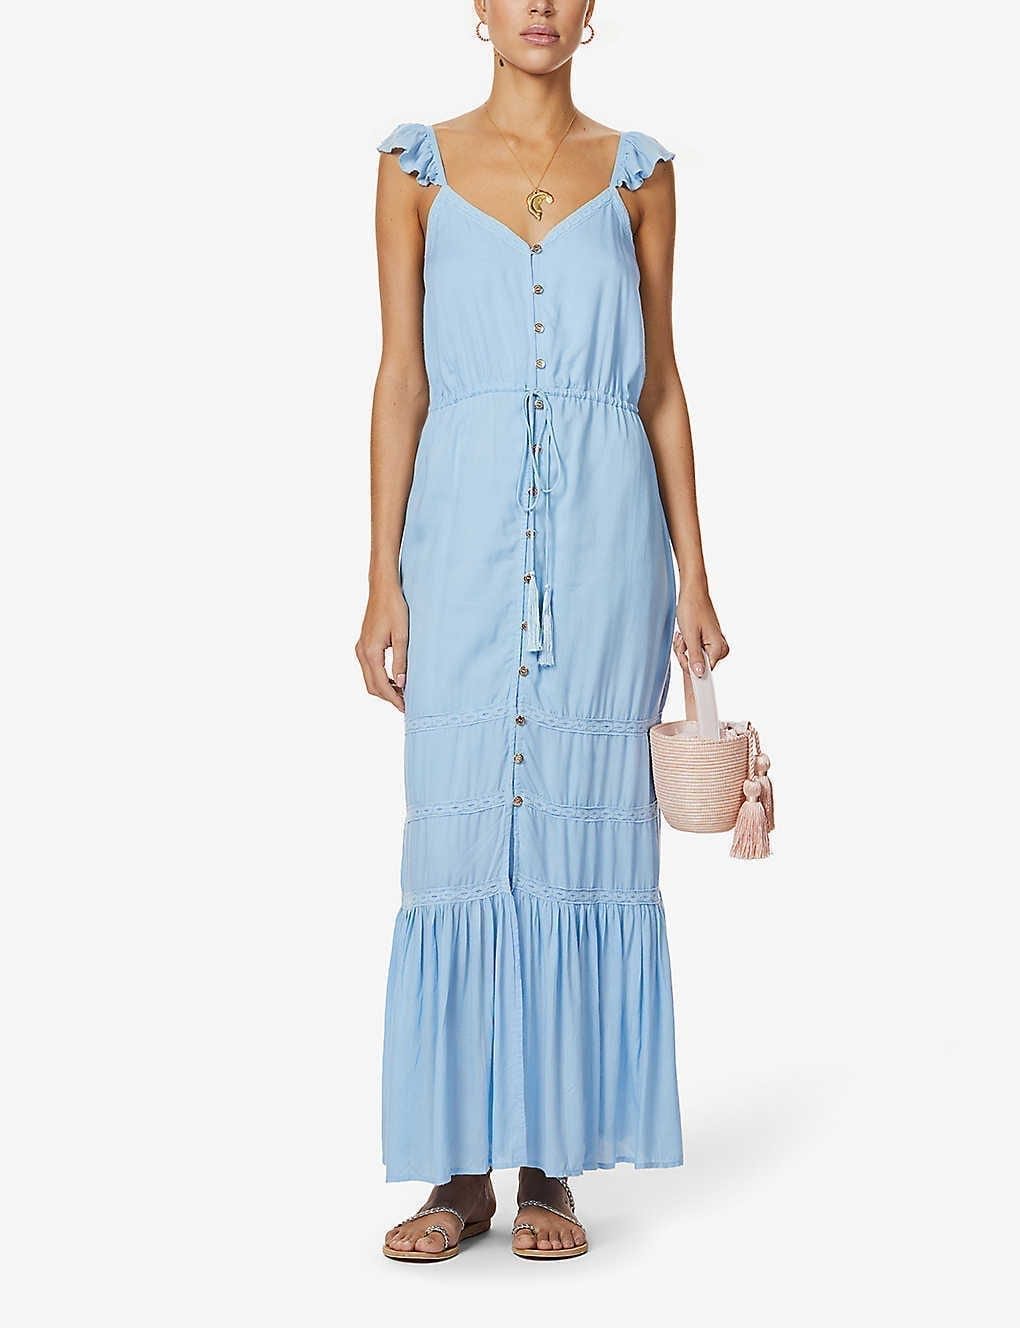 MELISSA ODABASH Alanna Embroidered Woven Midi Dress